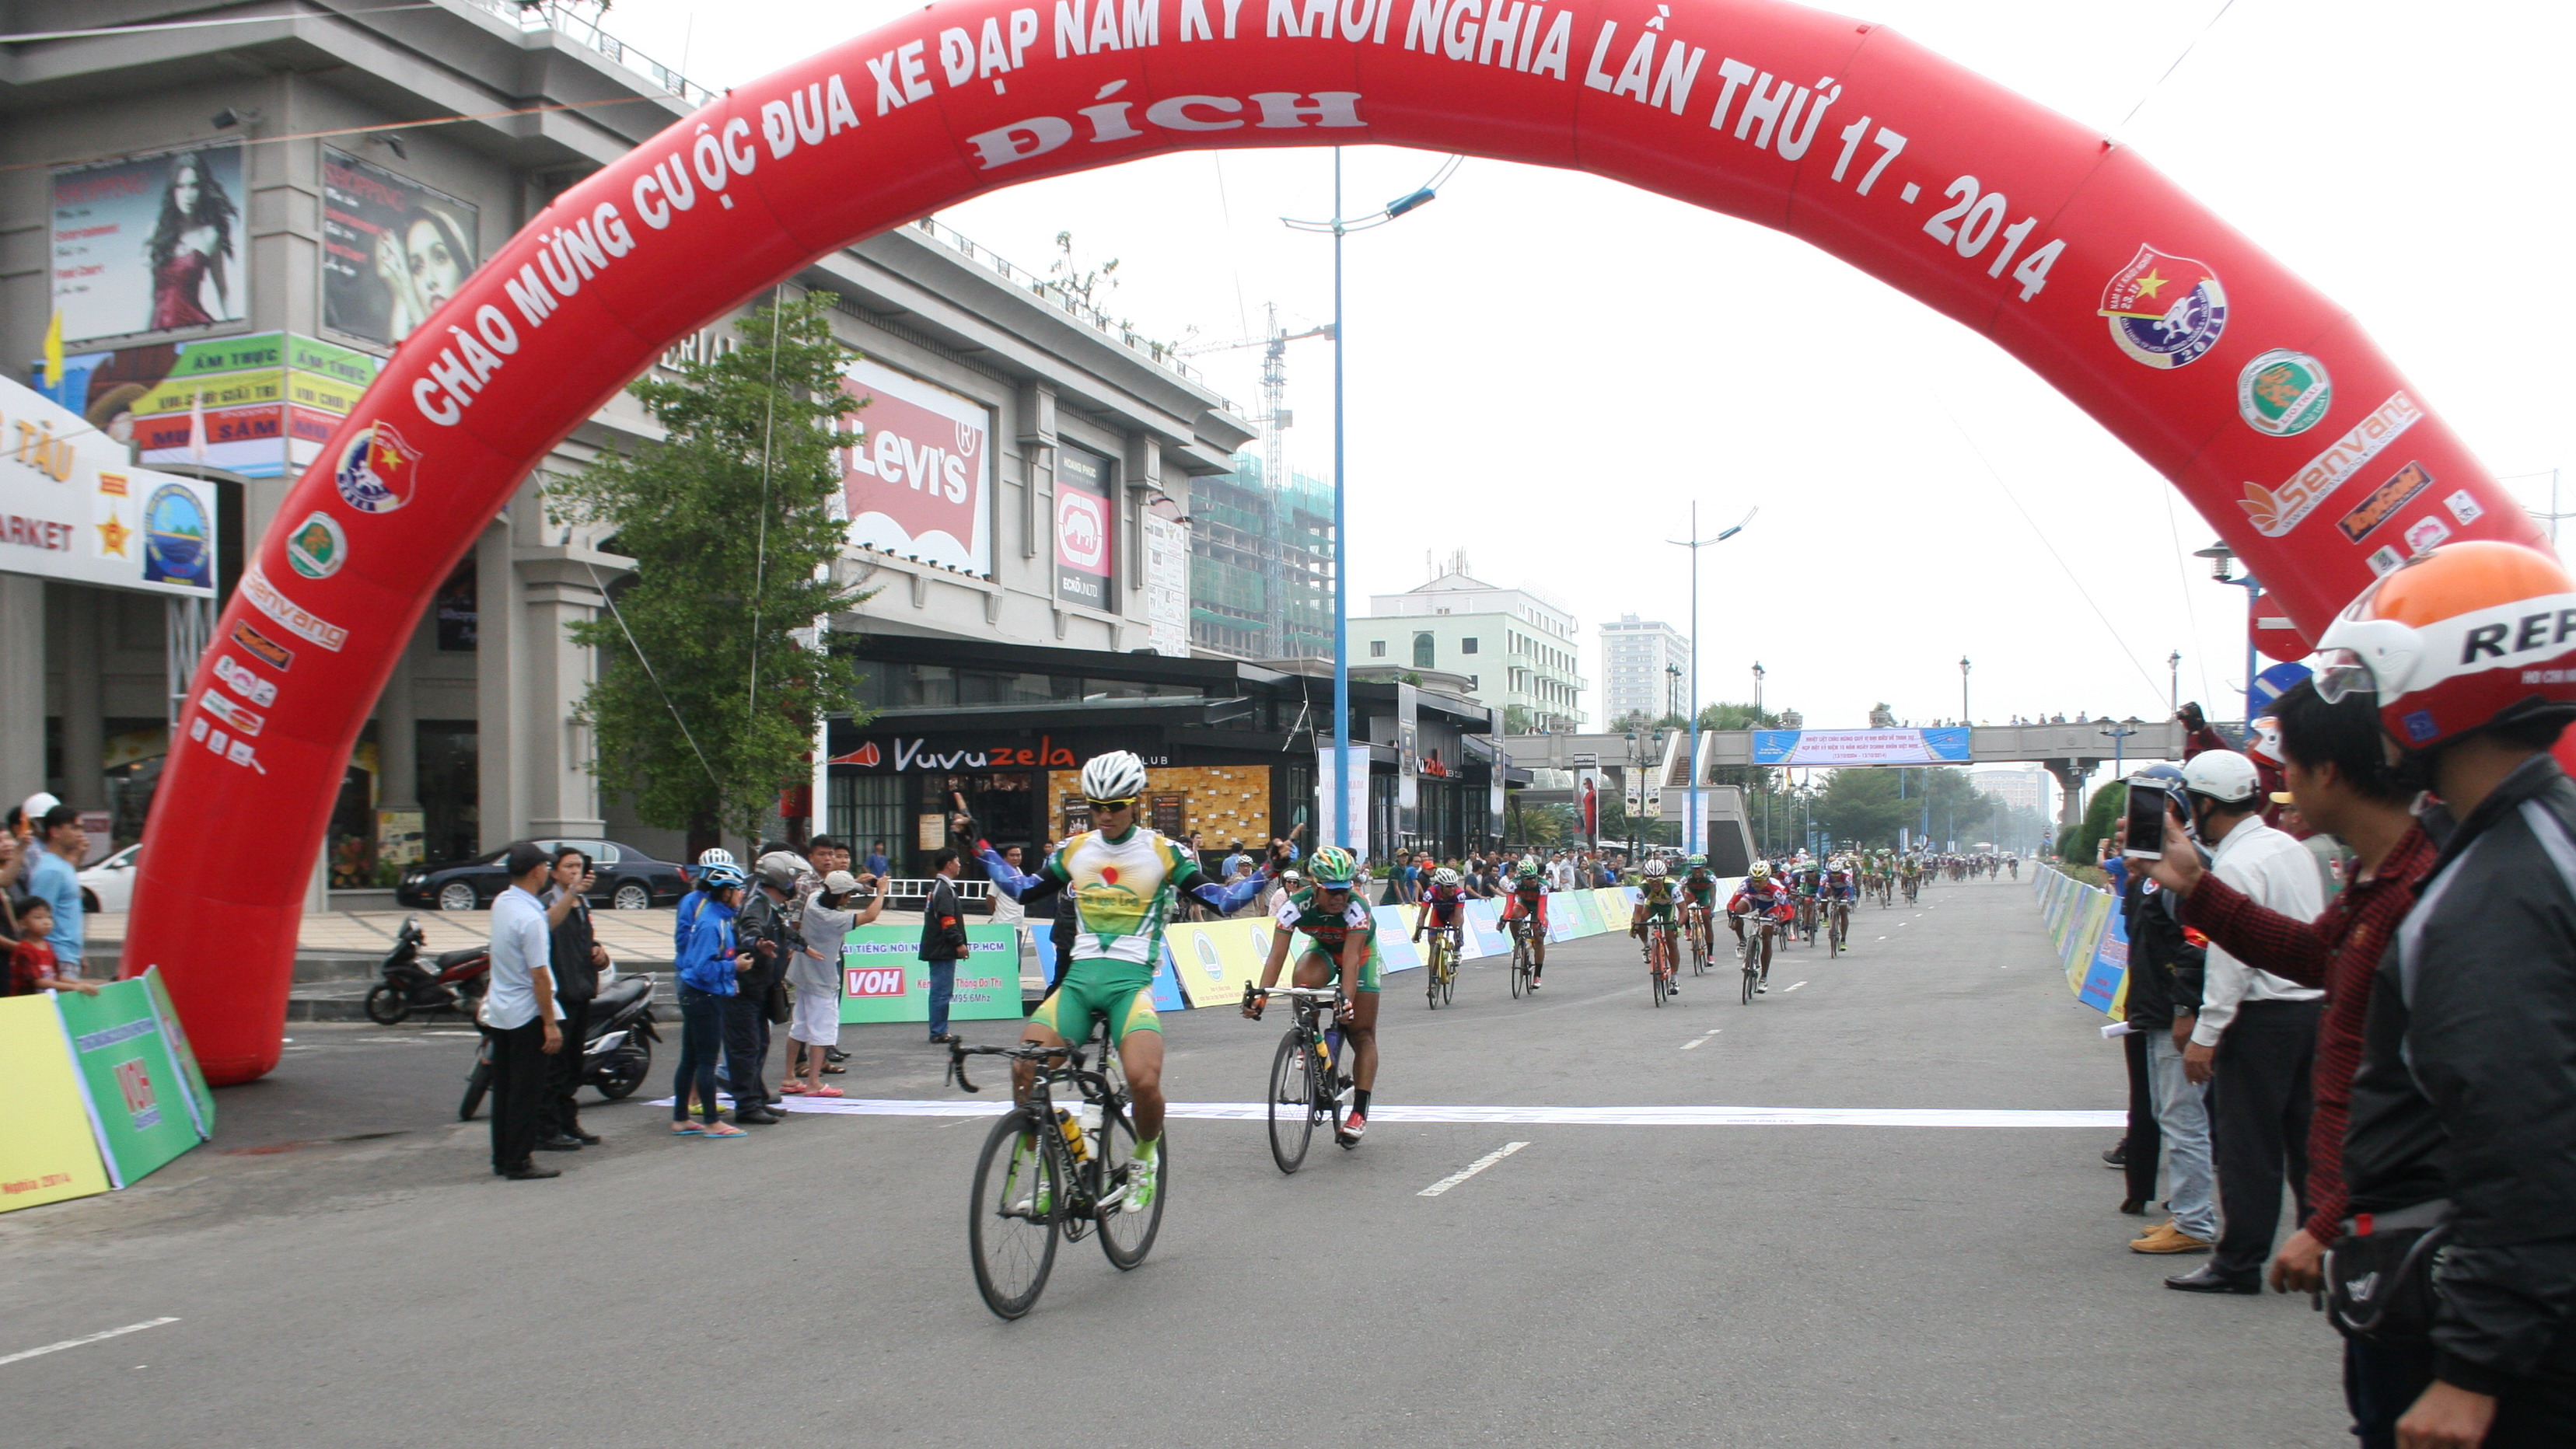 Vietnam Cycling: Southern Revolution Tour kicks off in Ho Chi Minh City